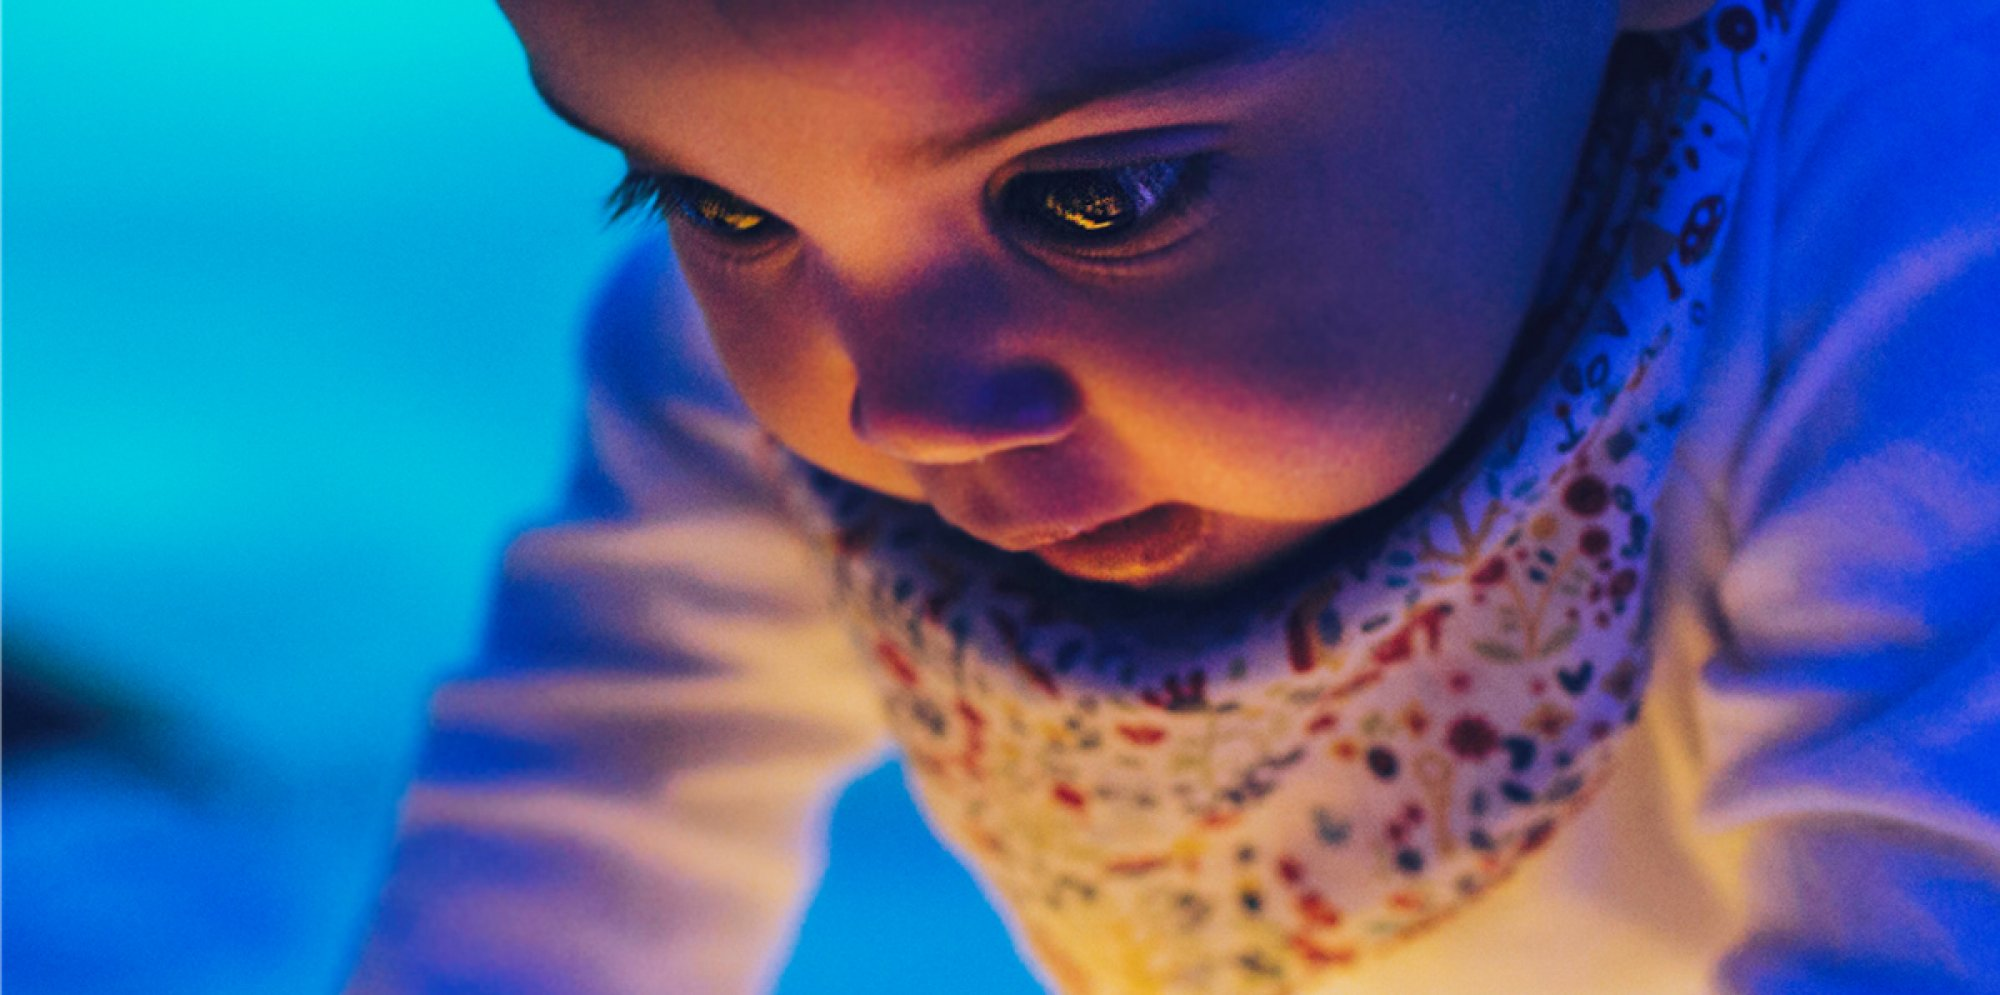 a baby's astonished face lit up by a yellow light source